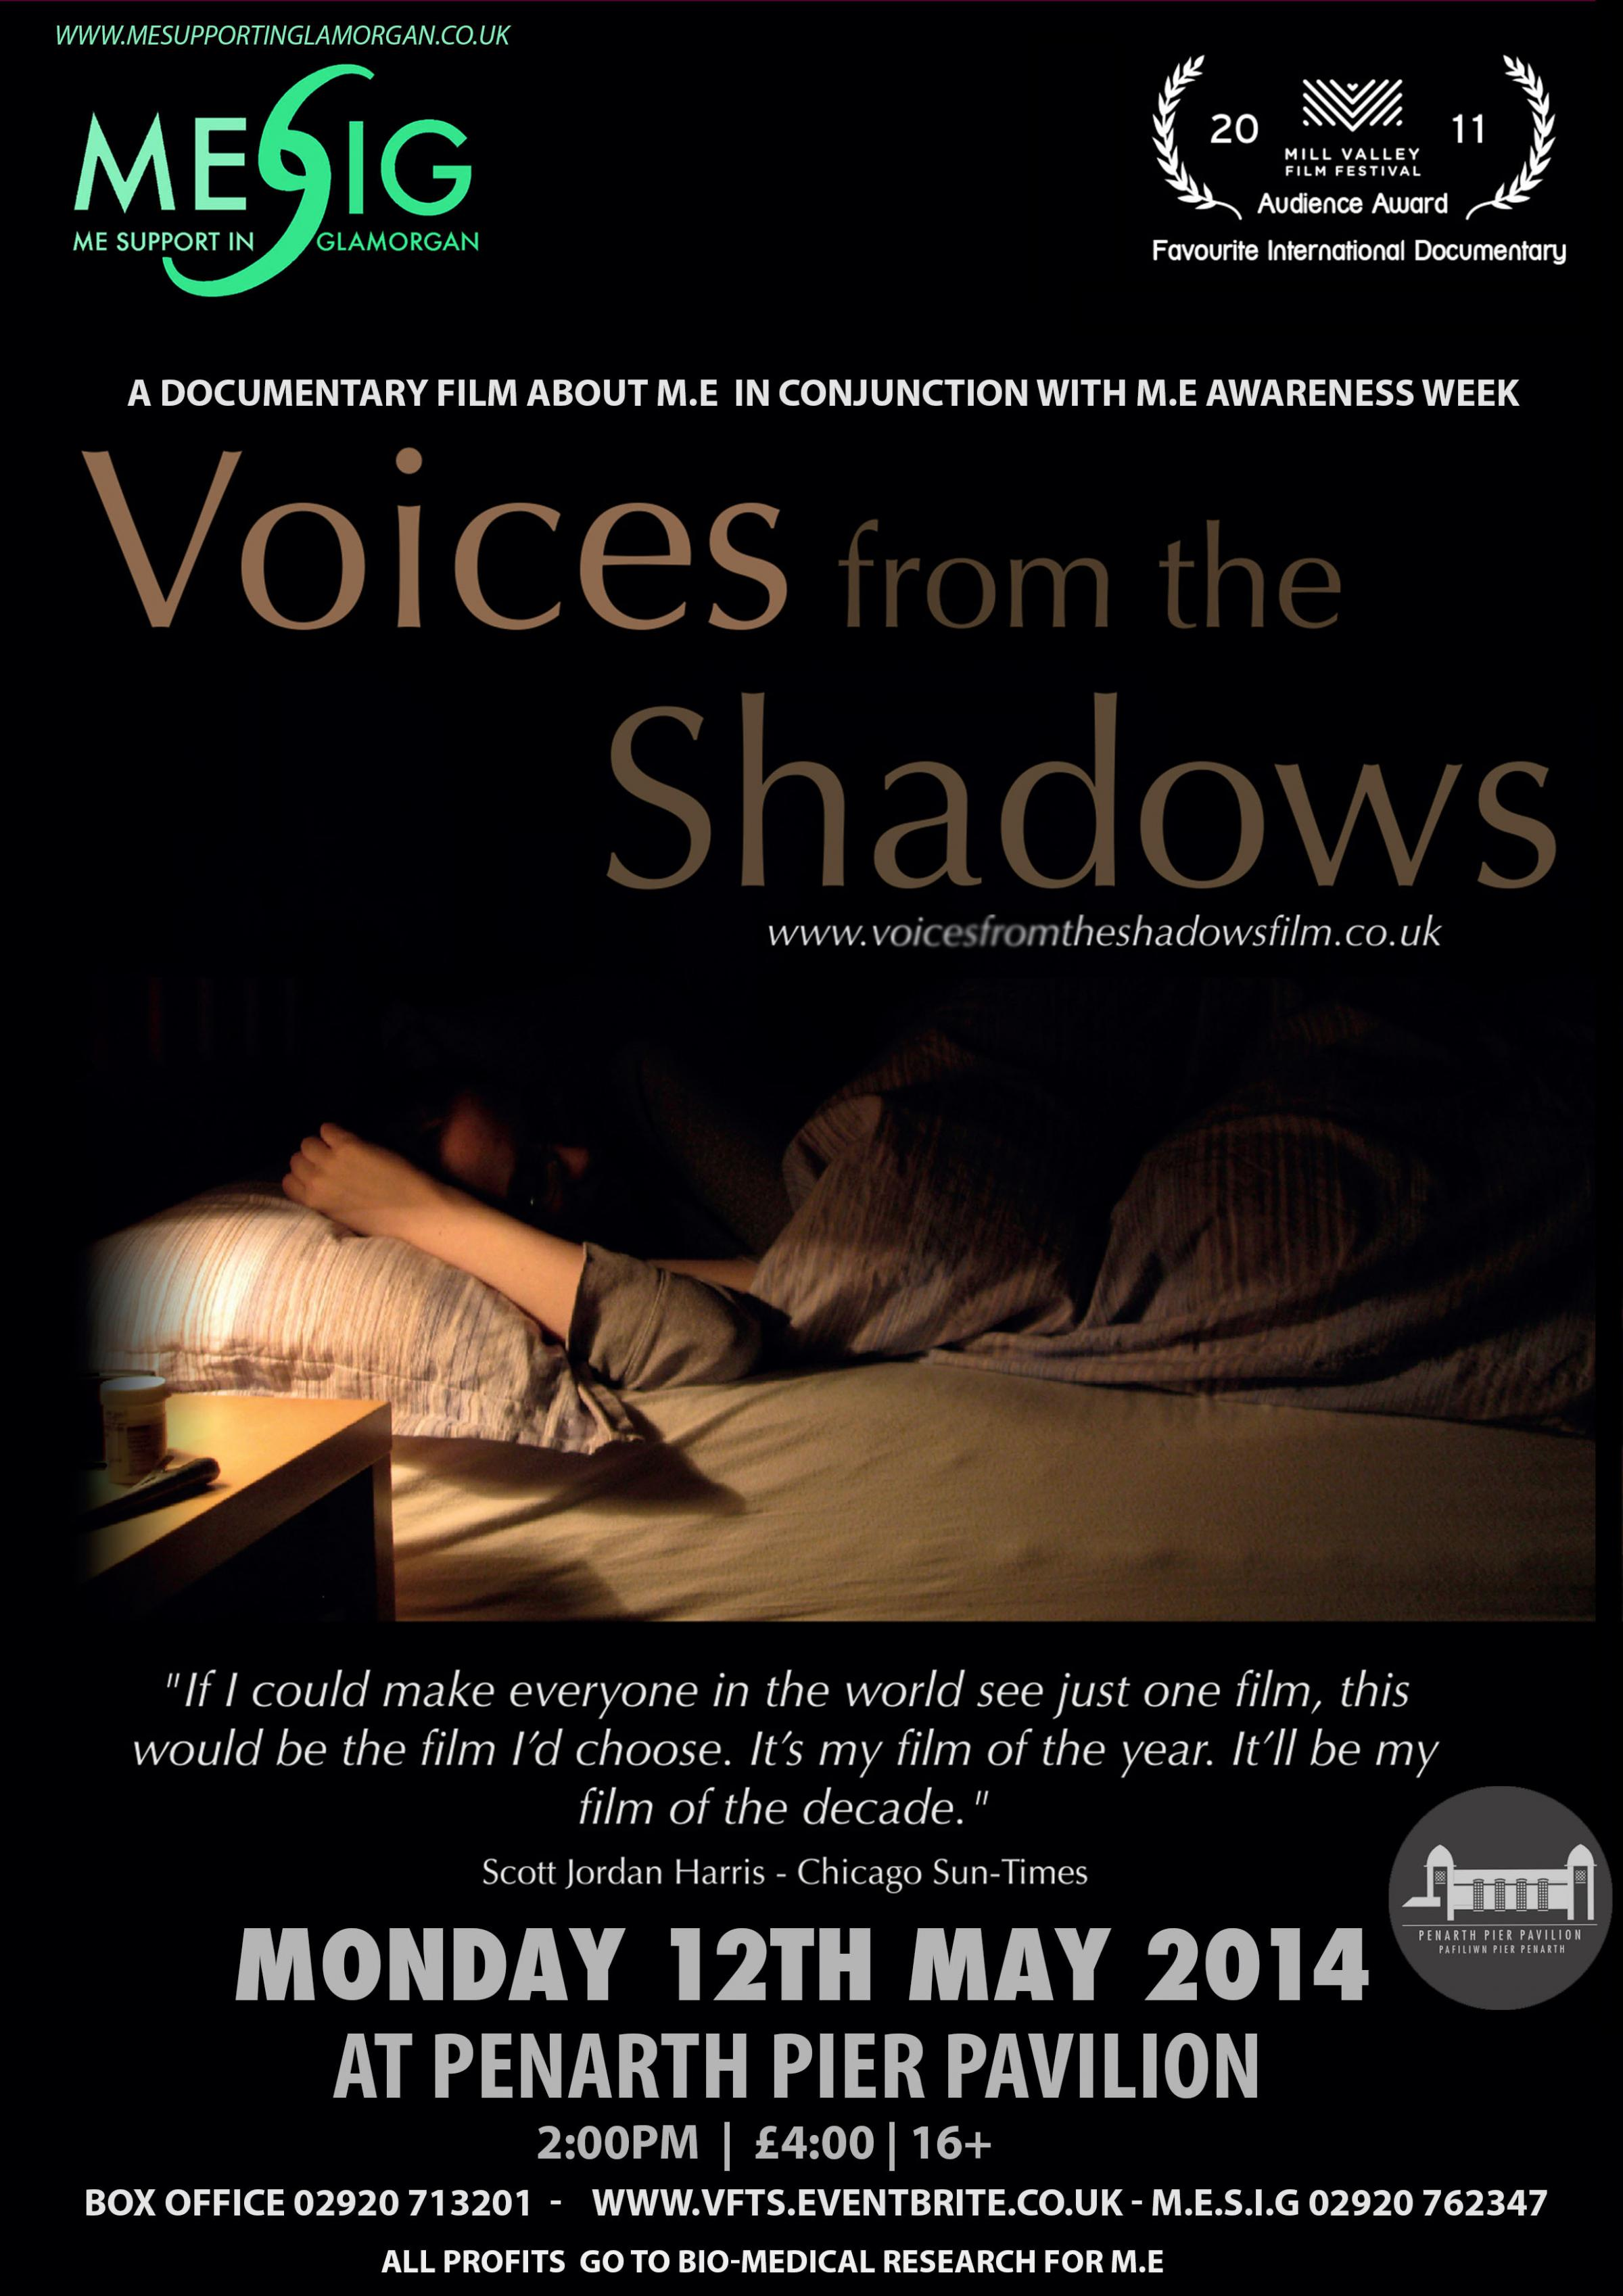 CINEMA: The award winning documentary film 'Voices of the Shadows' will be shown at Penarth Pier Pavilion cinema